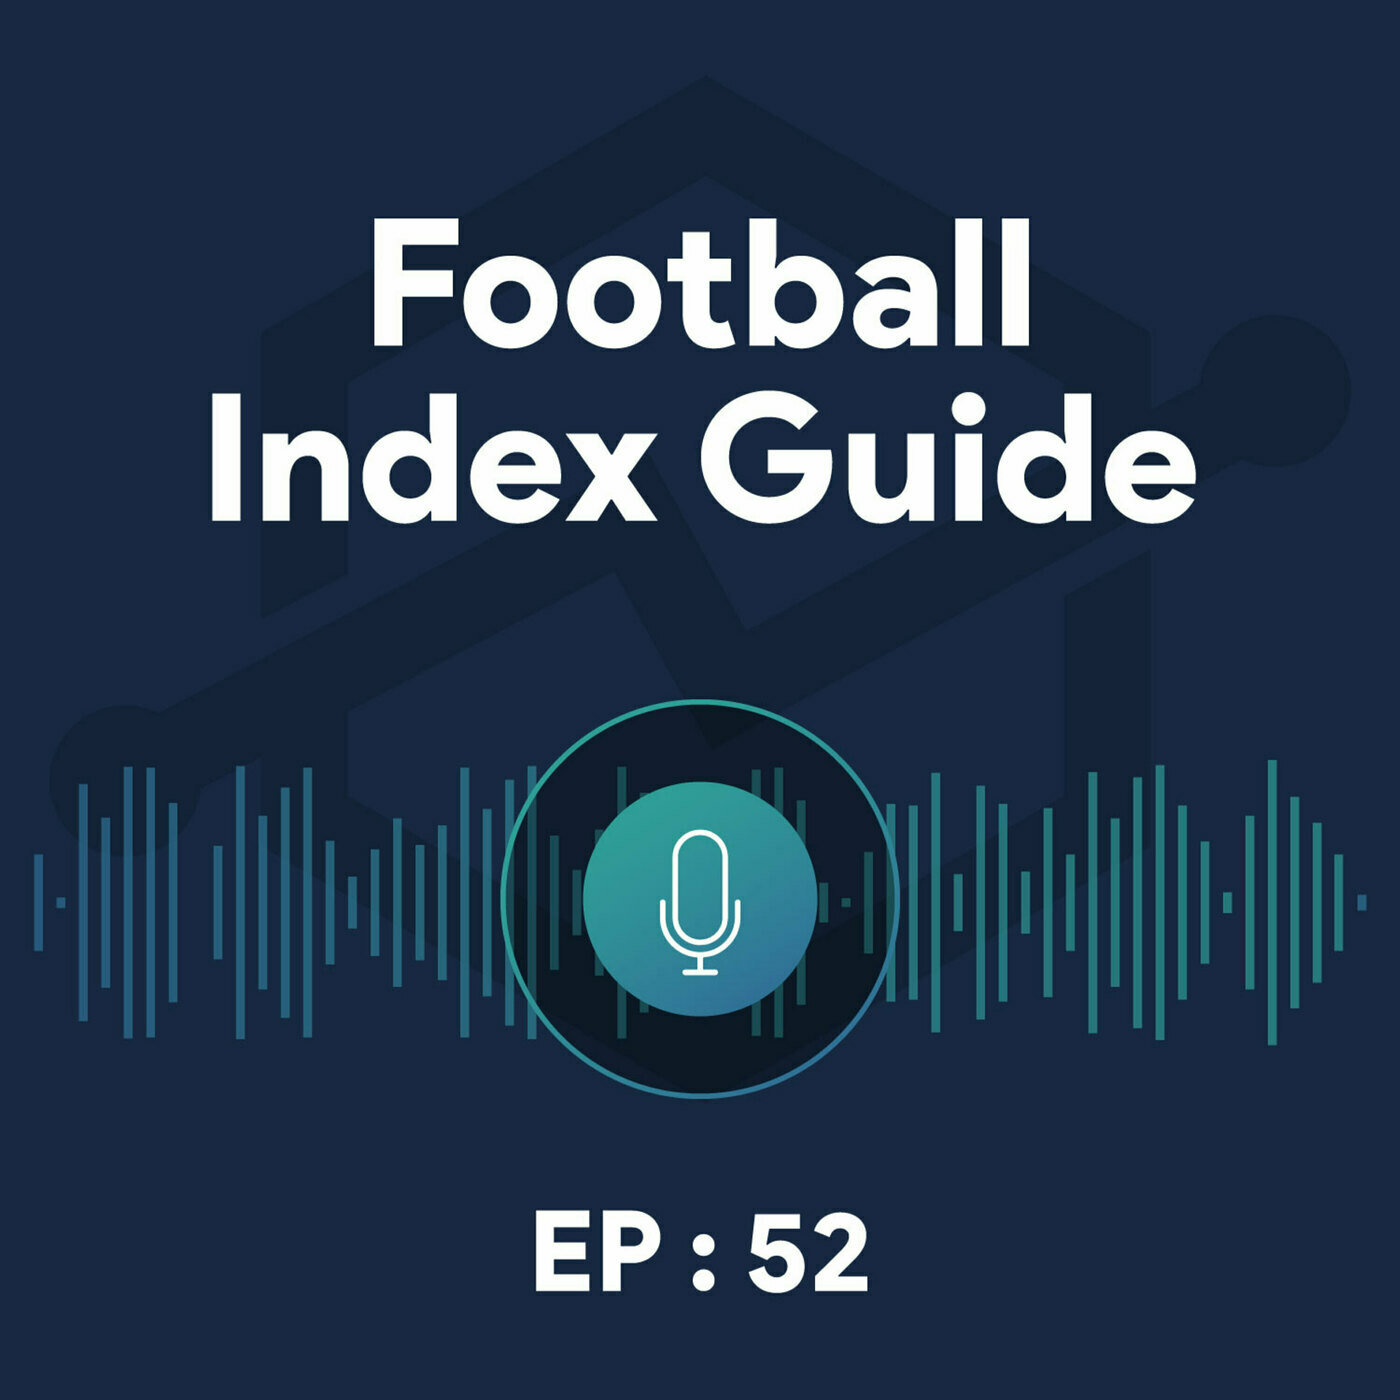 Football Index Podcast Episode 41: South American Football